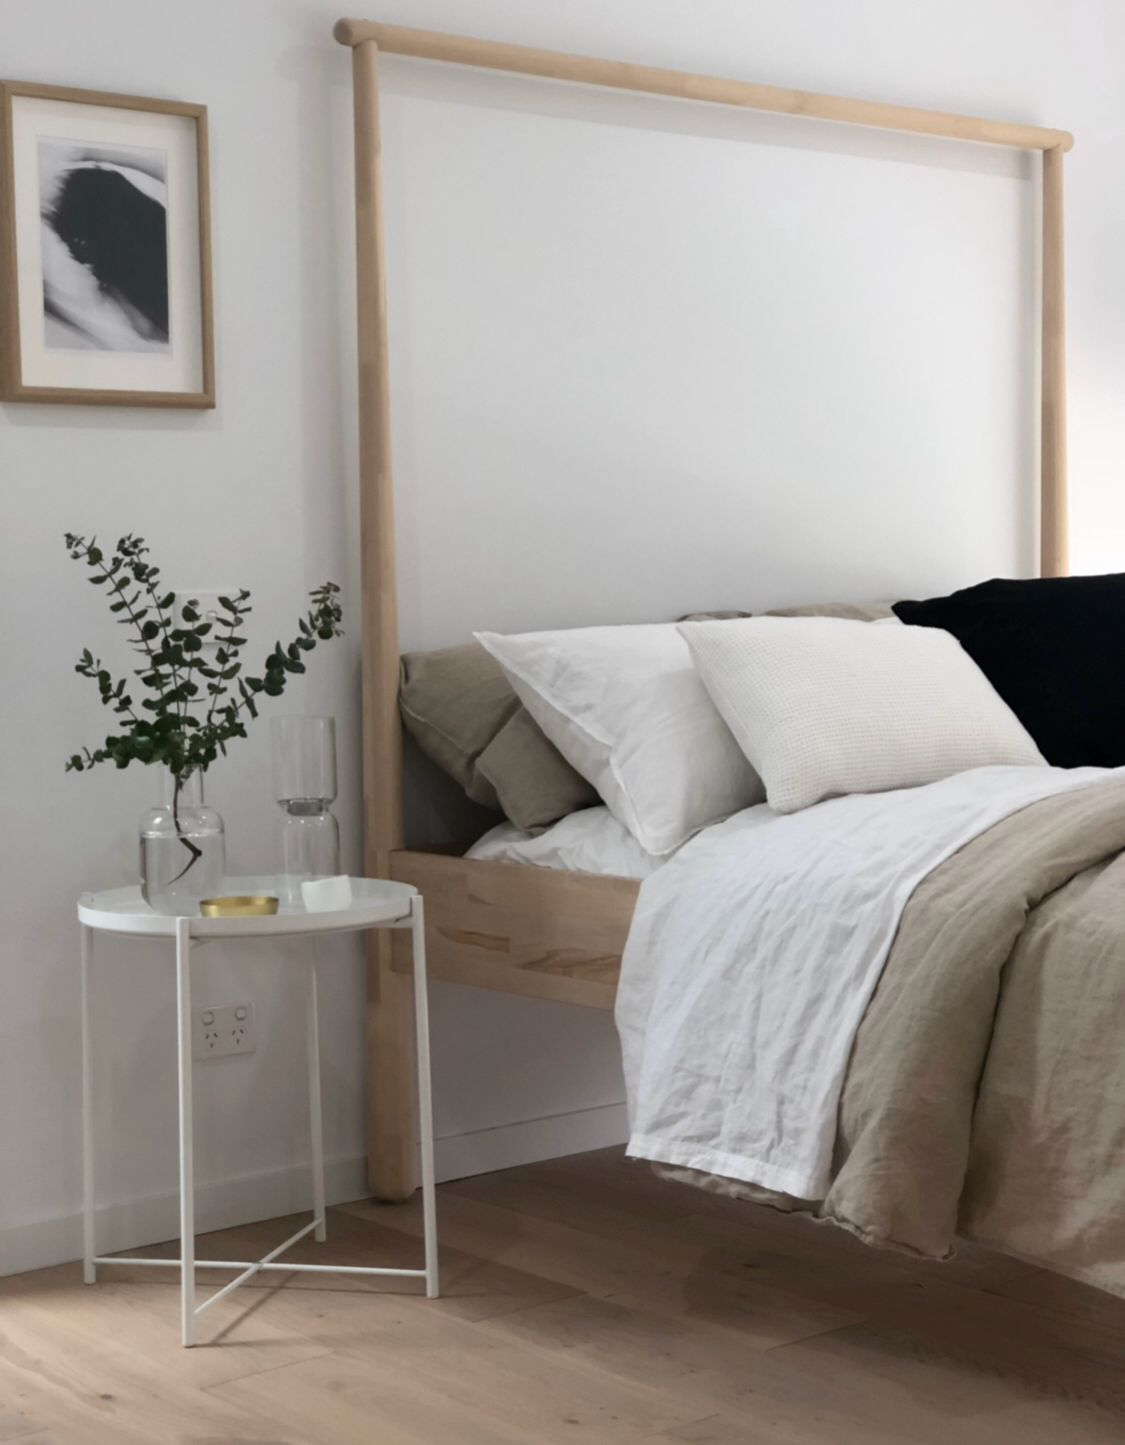 Schlafzimmer Ikea Ideen Ikea Gladom Side Table Ikea Ideen In 2019 Pinterest